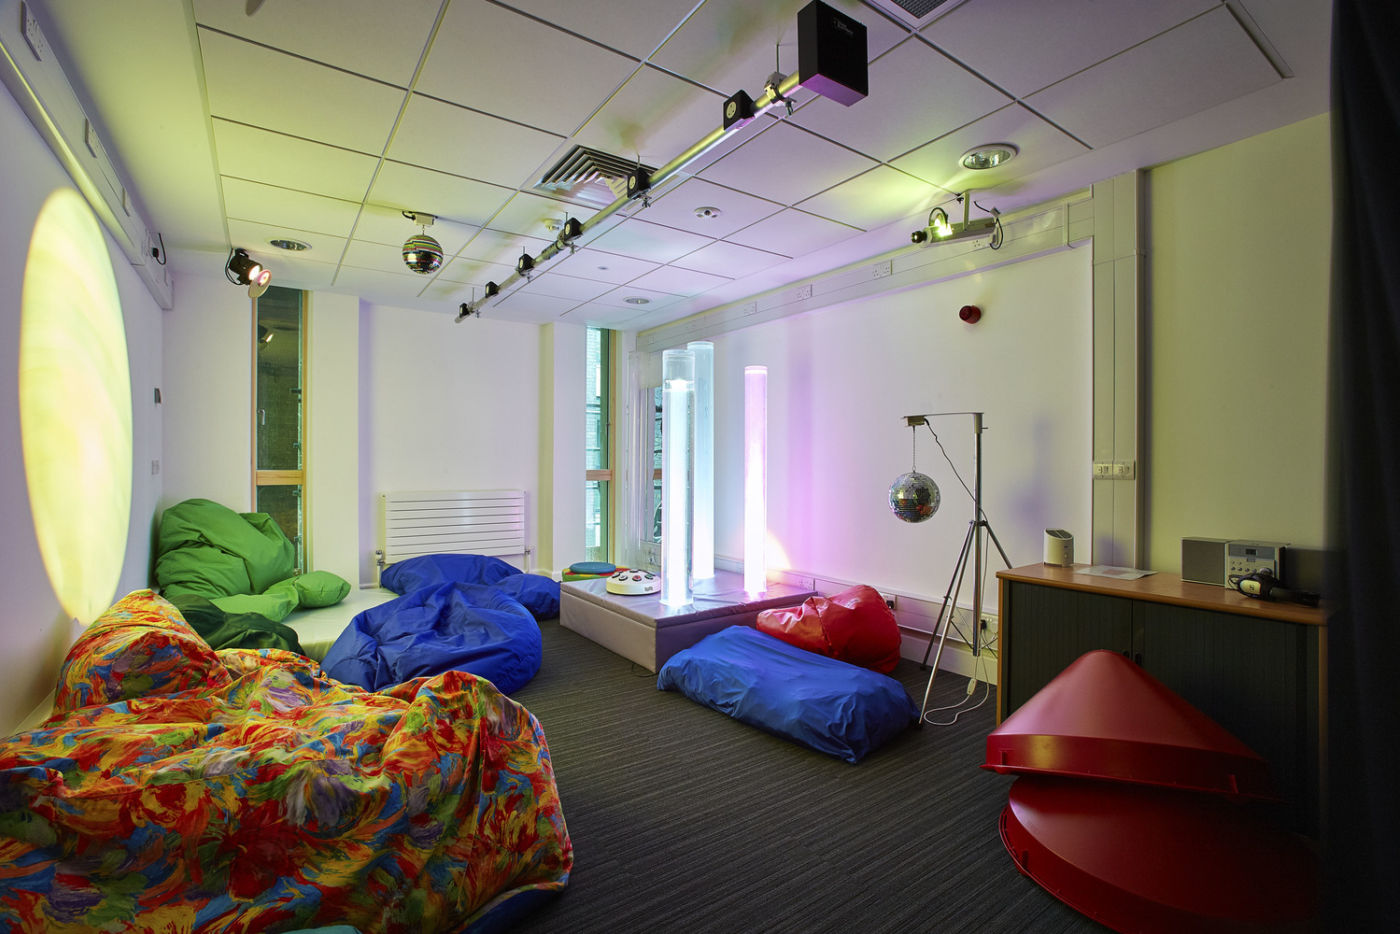 Breakout area with beanbags